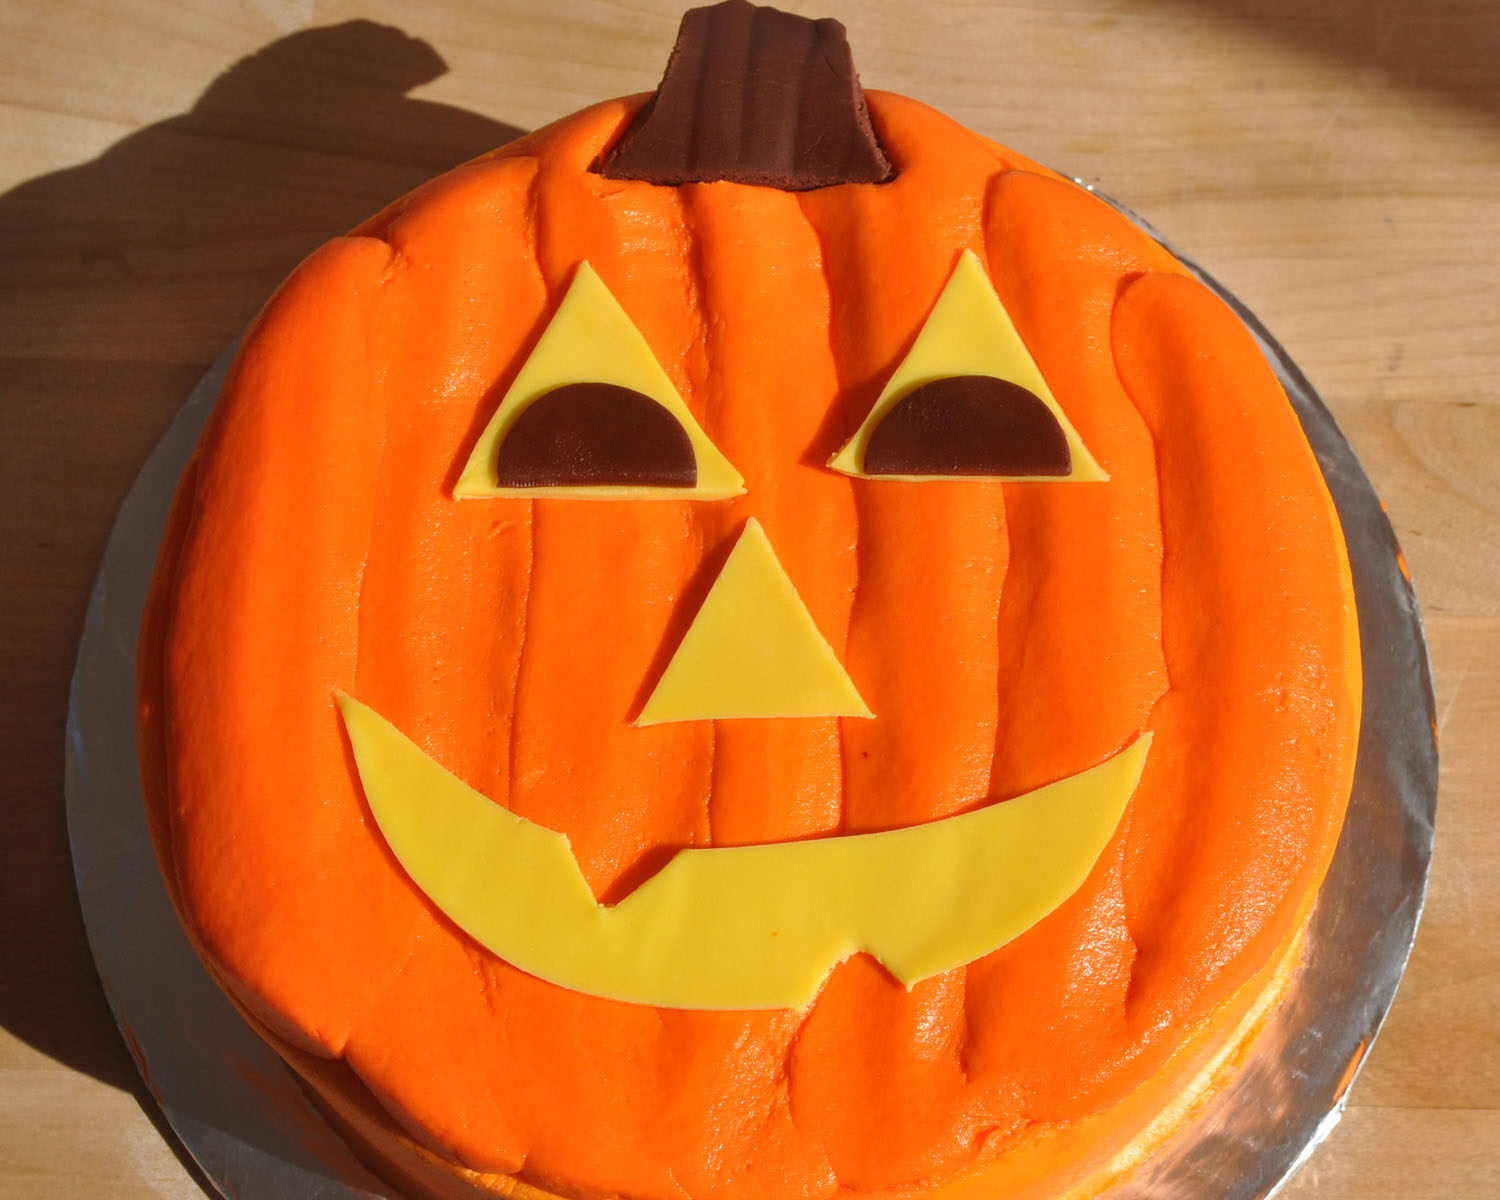 Easy Cake Decorating Halloween : Beki Cook s Cake Blog: Simple Jack-O-Lantern Cake